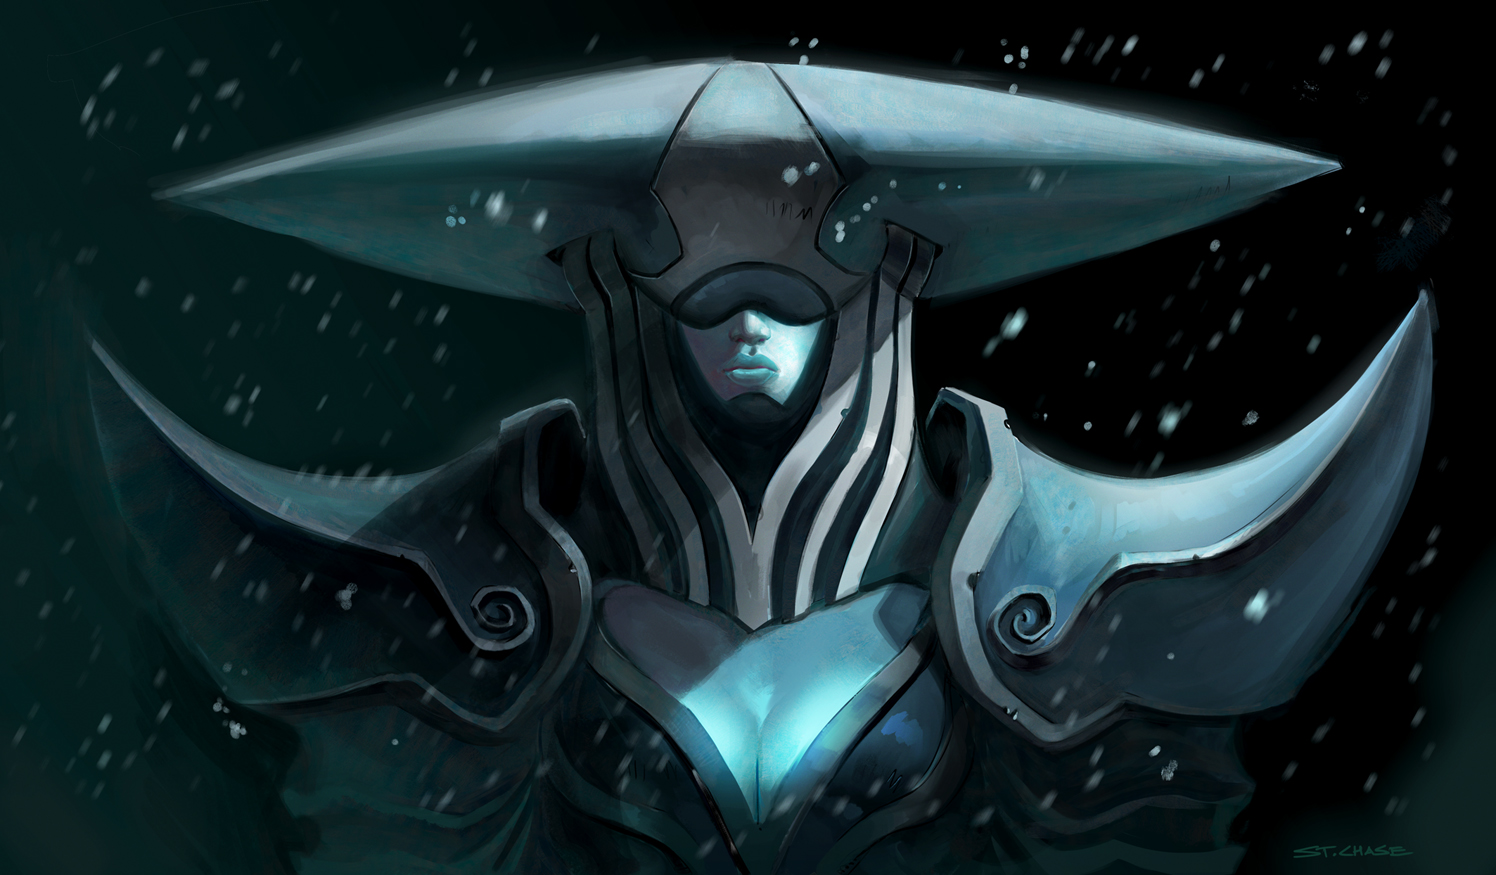 League of Legends- Lissandra by ChaseConley on DeviantArt